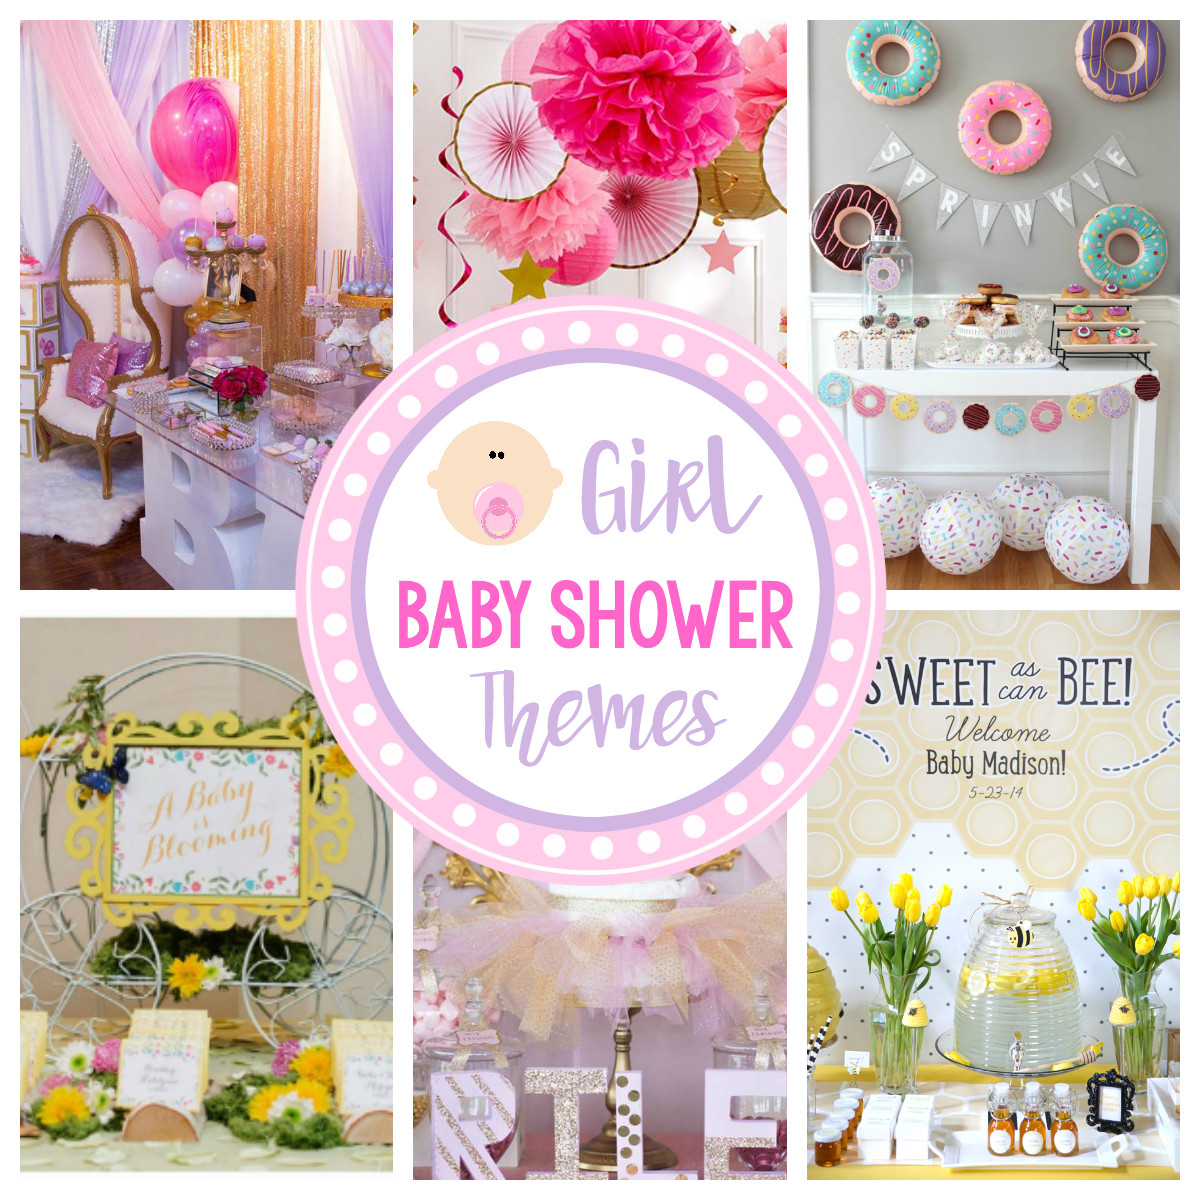 Baby Girl Shower Decorations Ideas  Cute Girl Baby Shower Themes & Ideas – Fun Squared